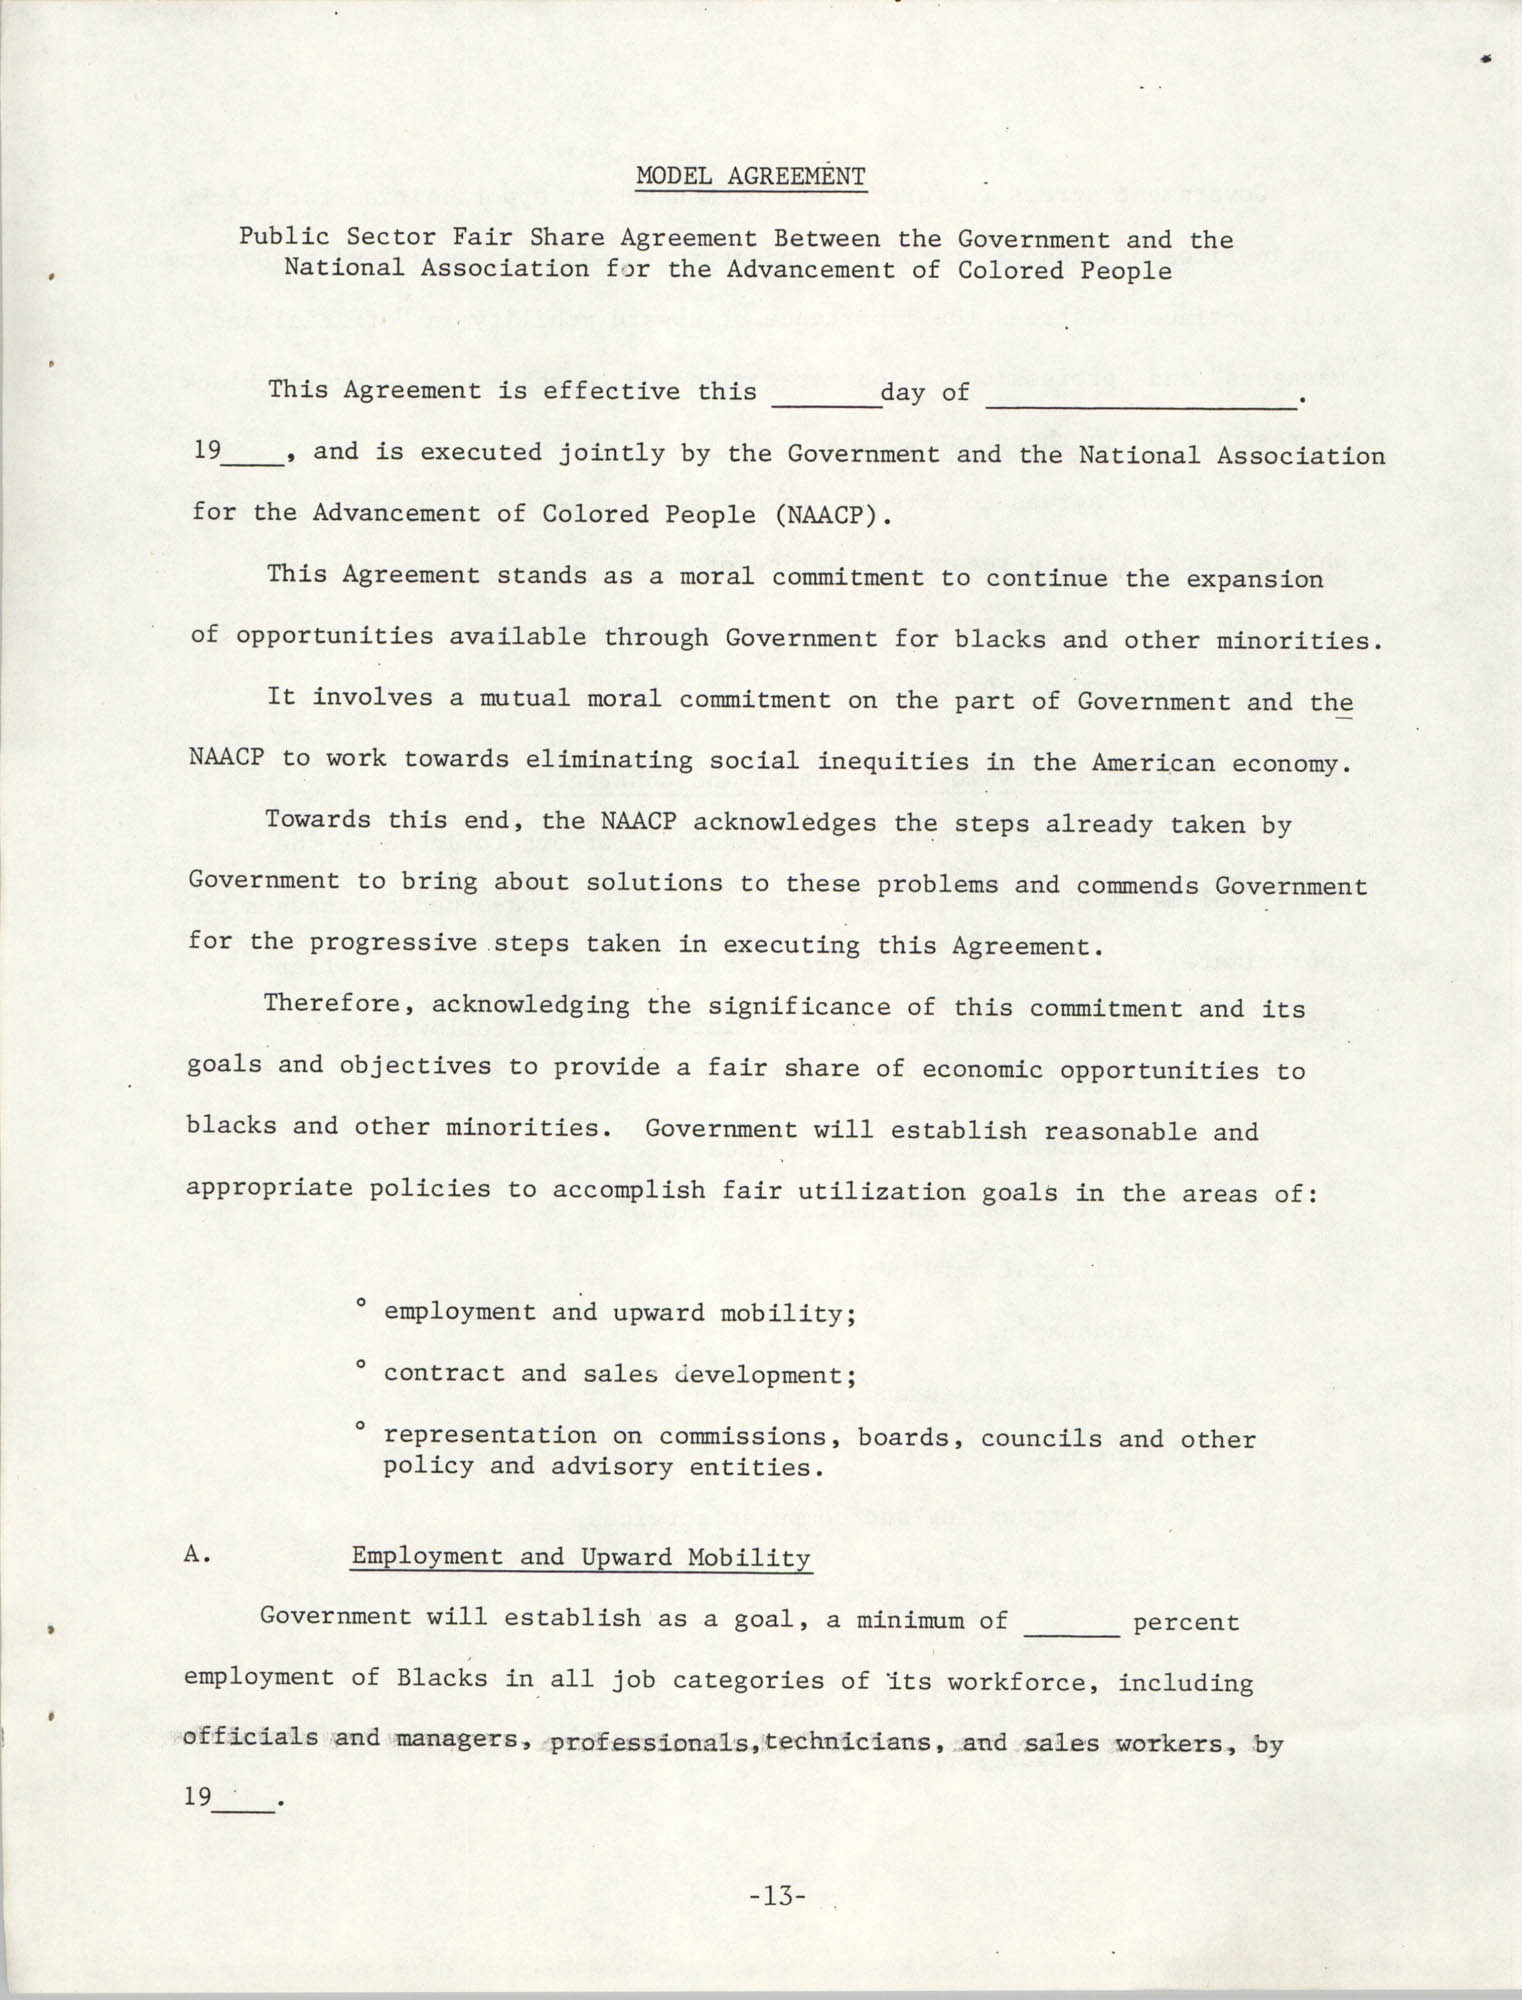 Governmental Fair Share Workshop for South Carolina Conference of Branches, October 11, 1985, Page 13